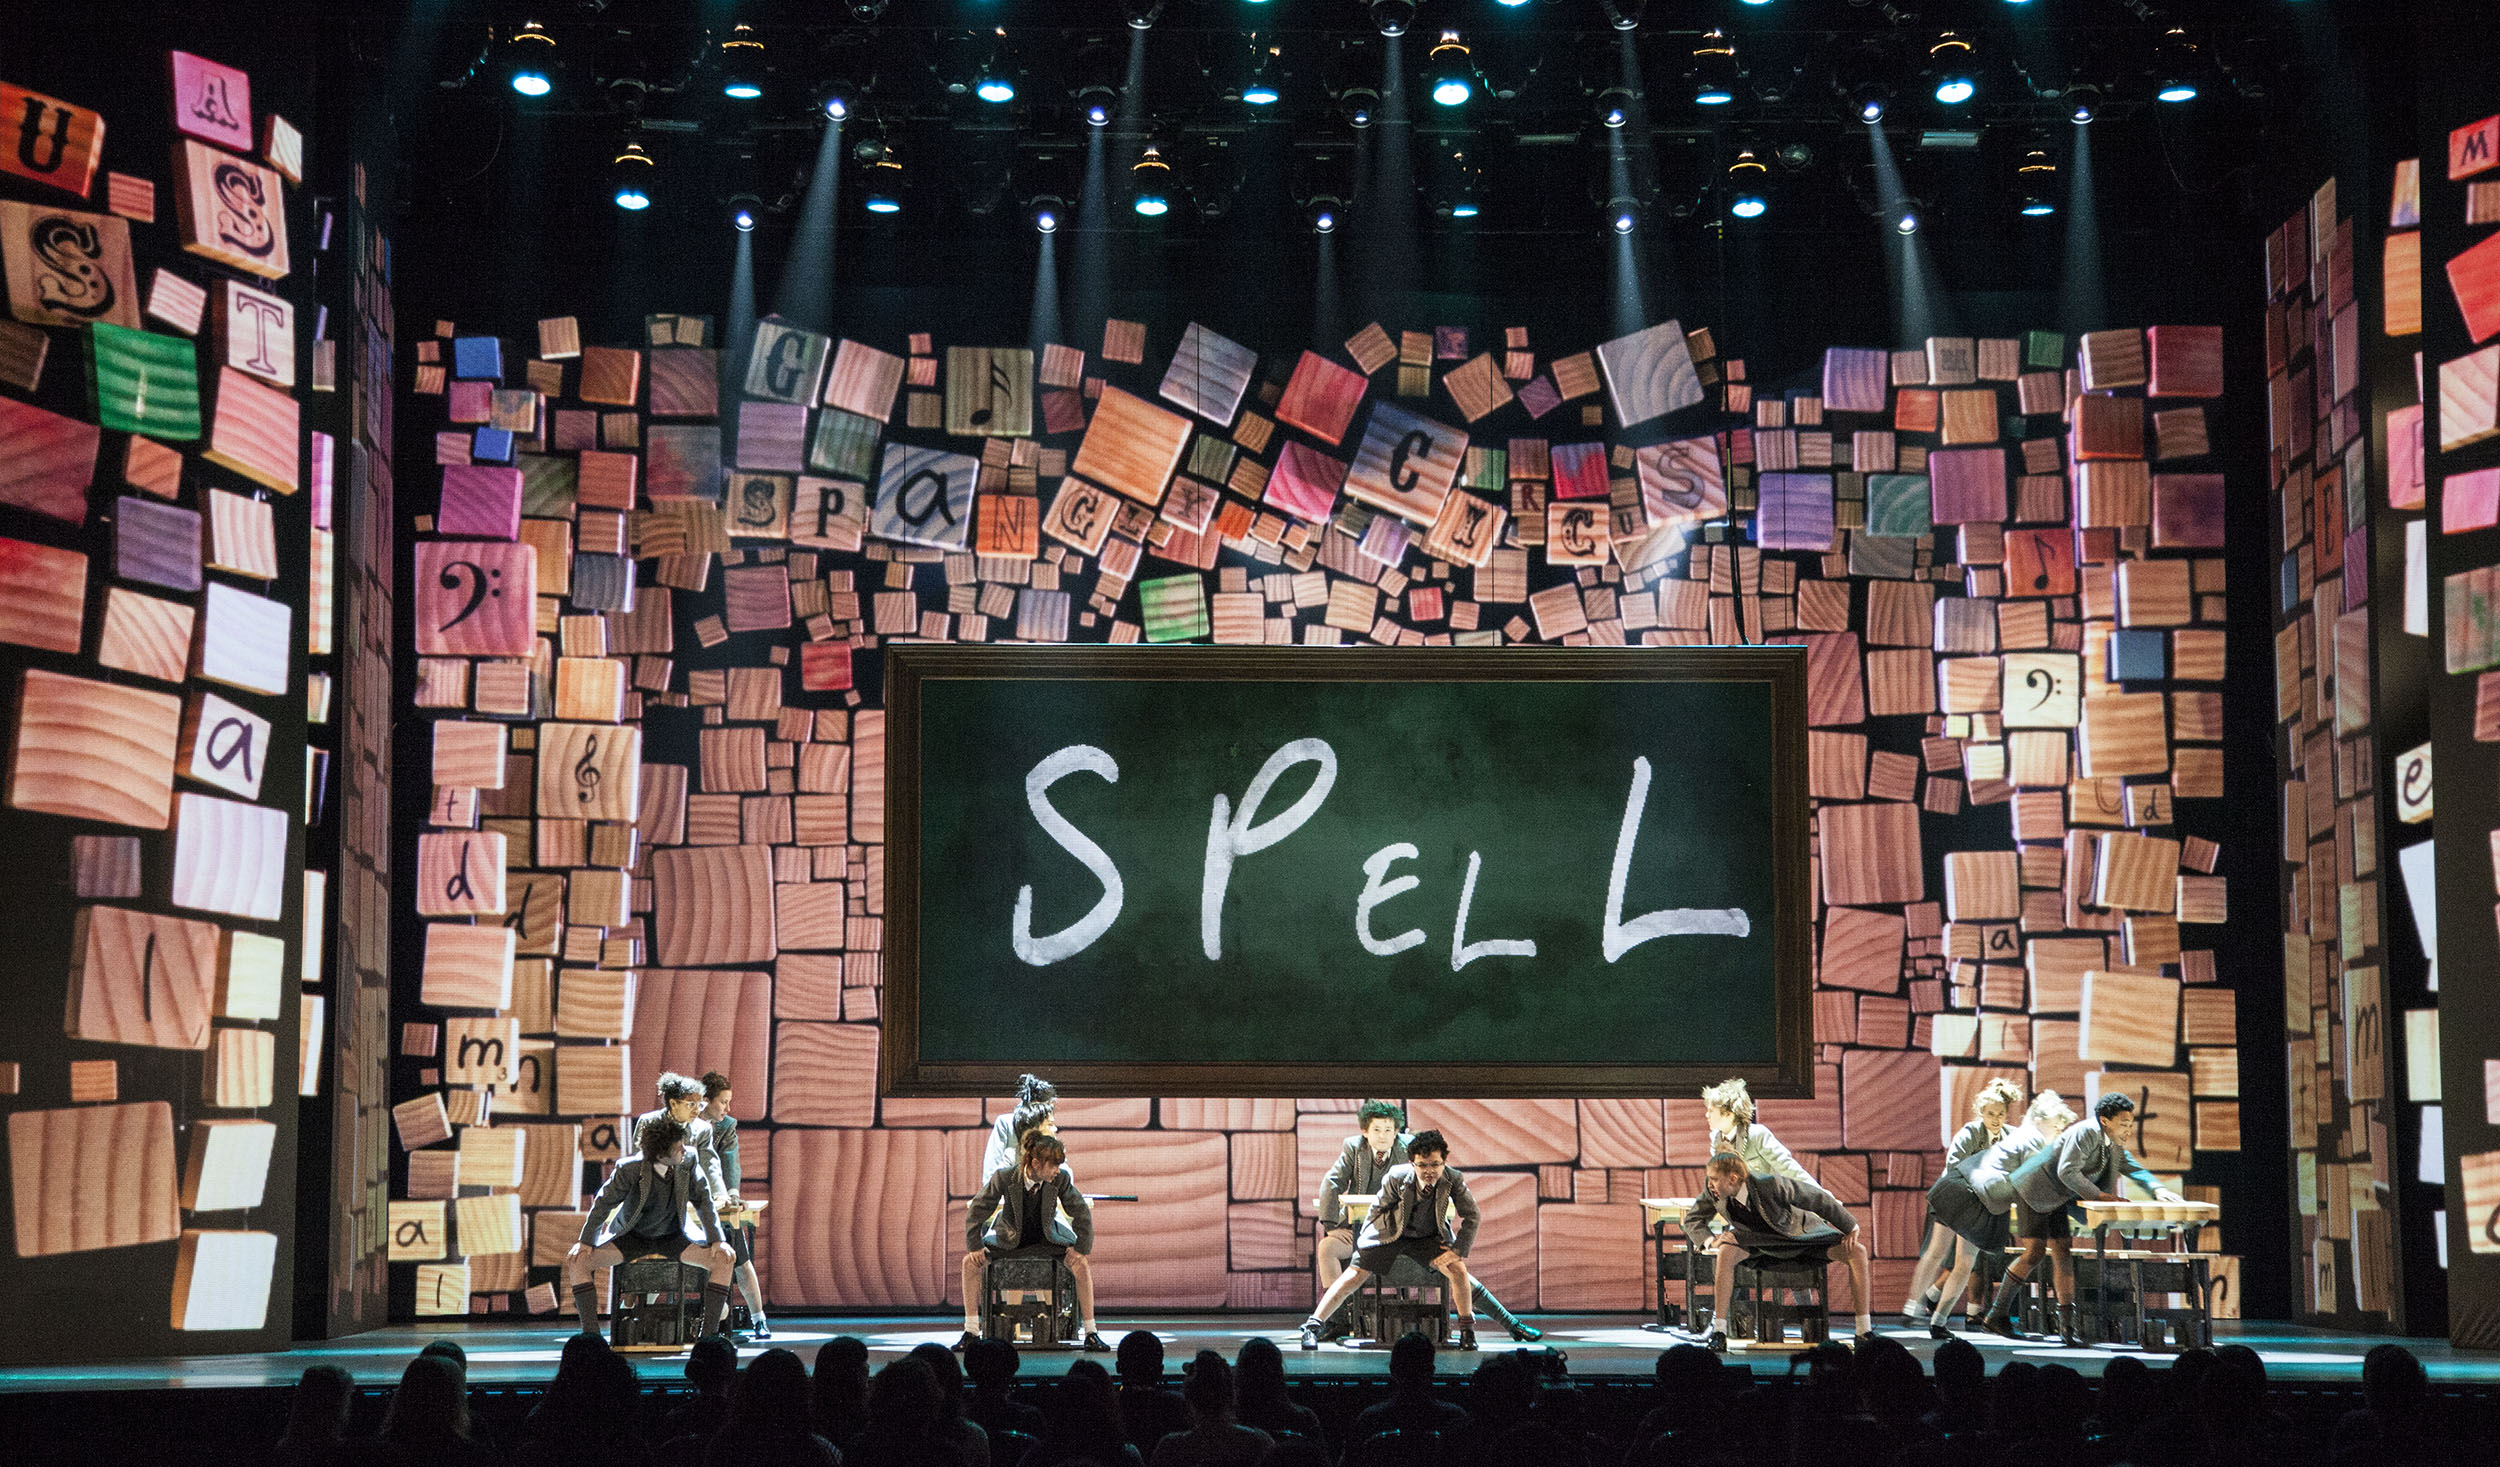 Highlights of screen design for the Tony Awards 2012-2013 : by K Brandon Bell